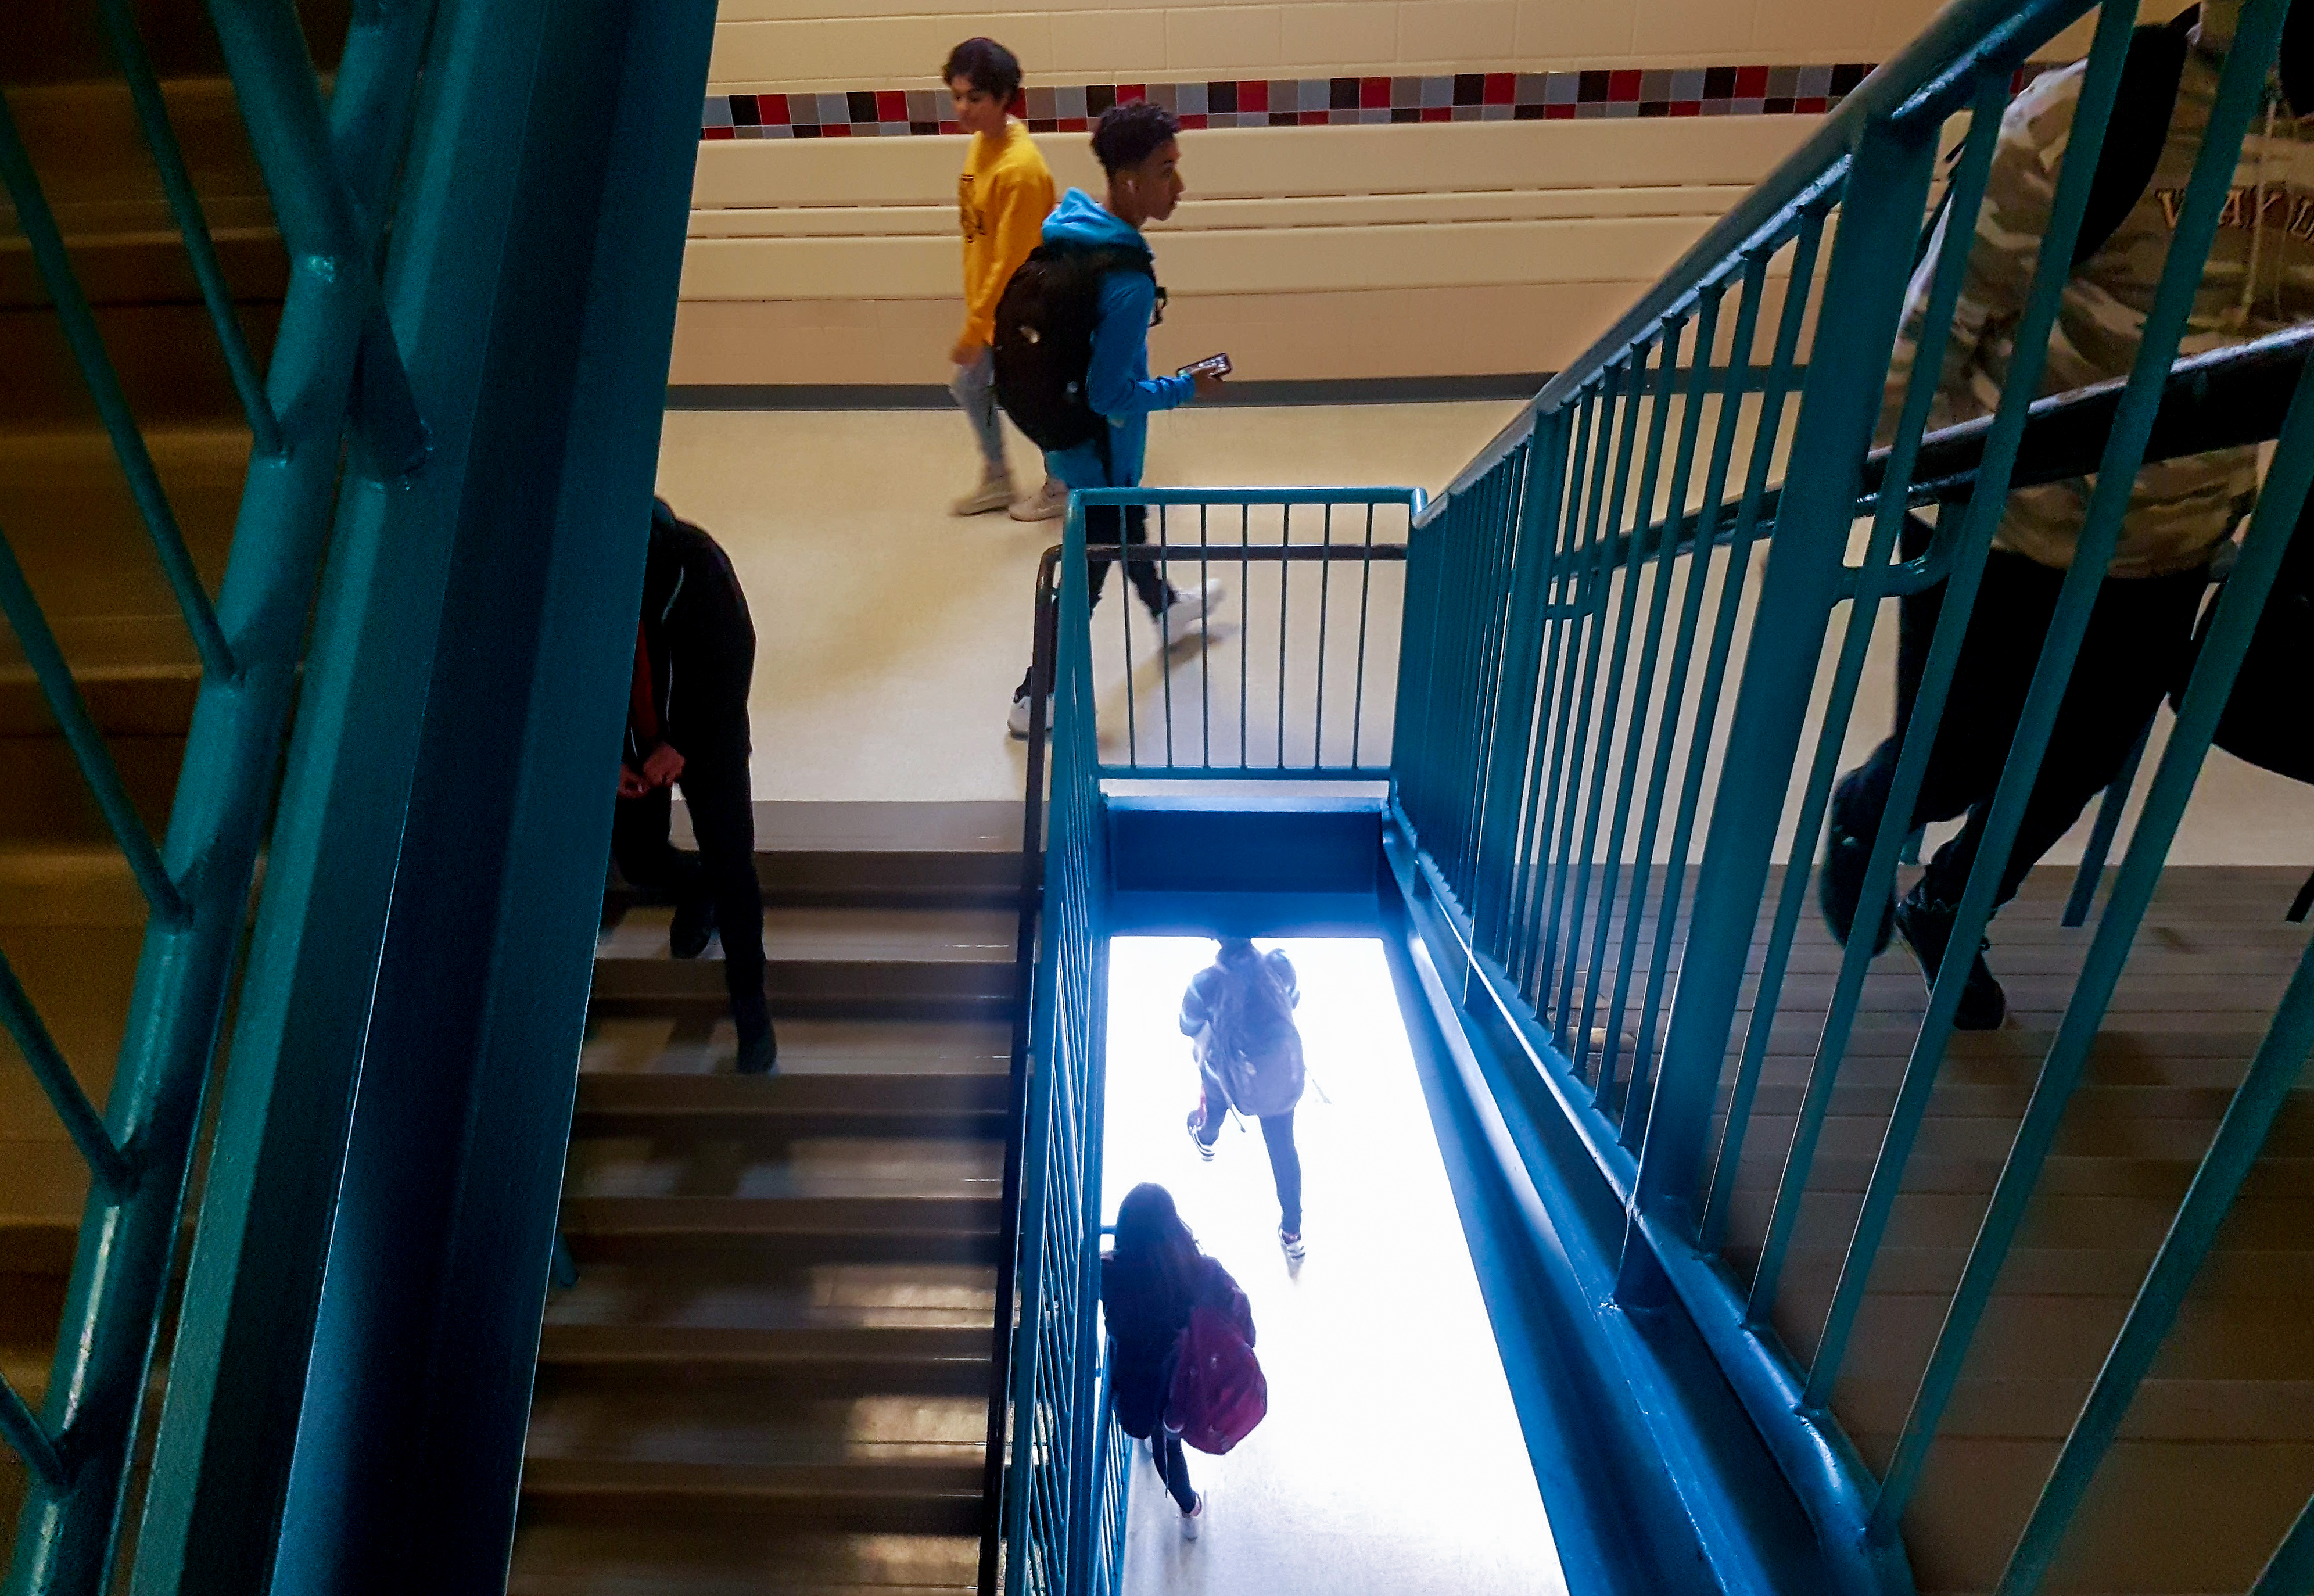 TC Williams stairwell with students